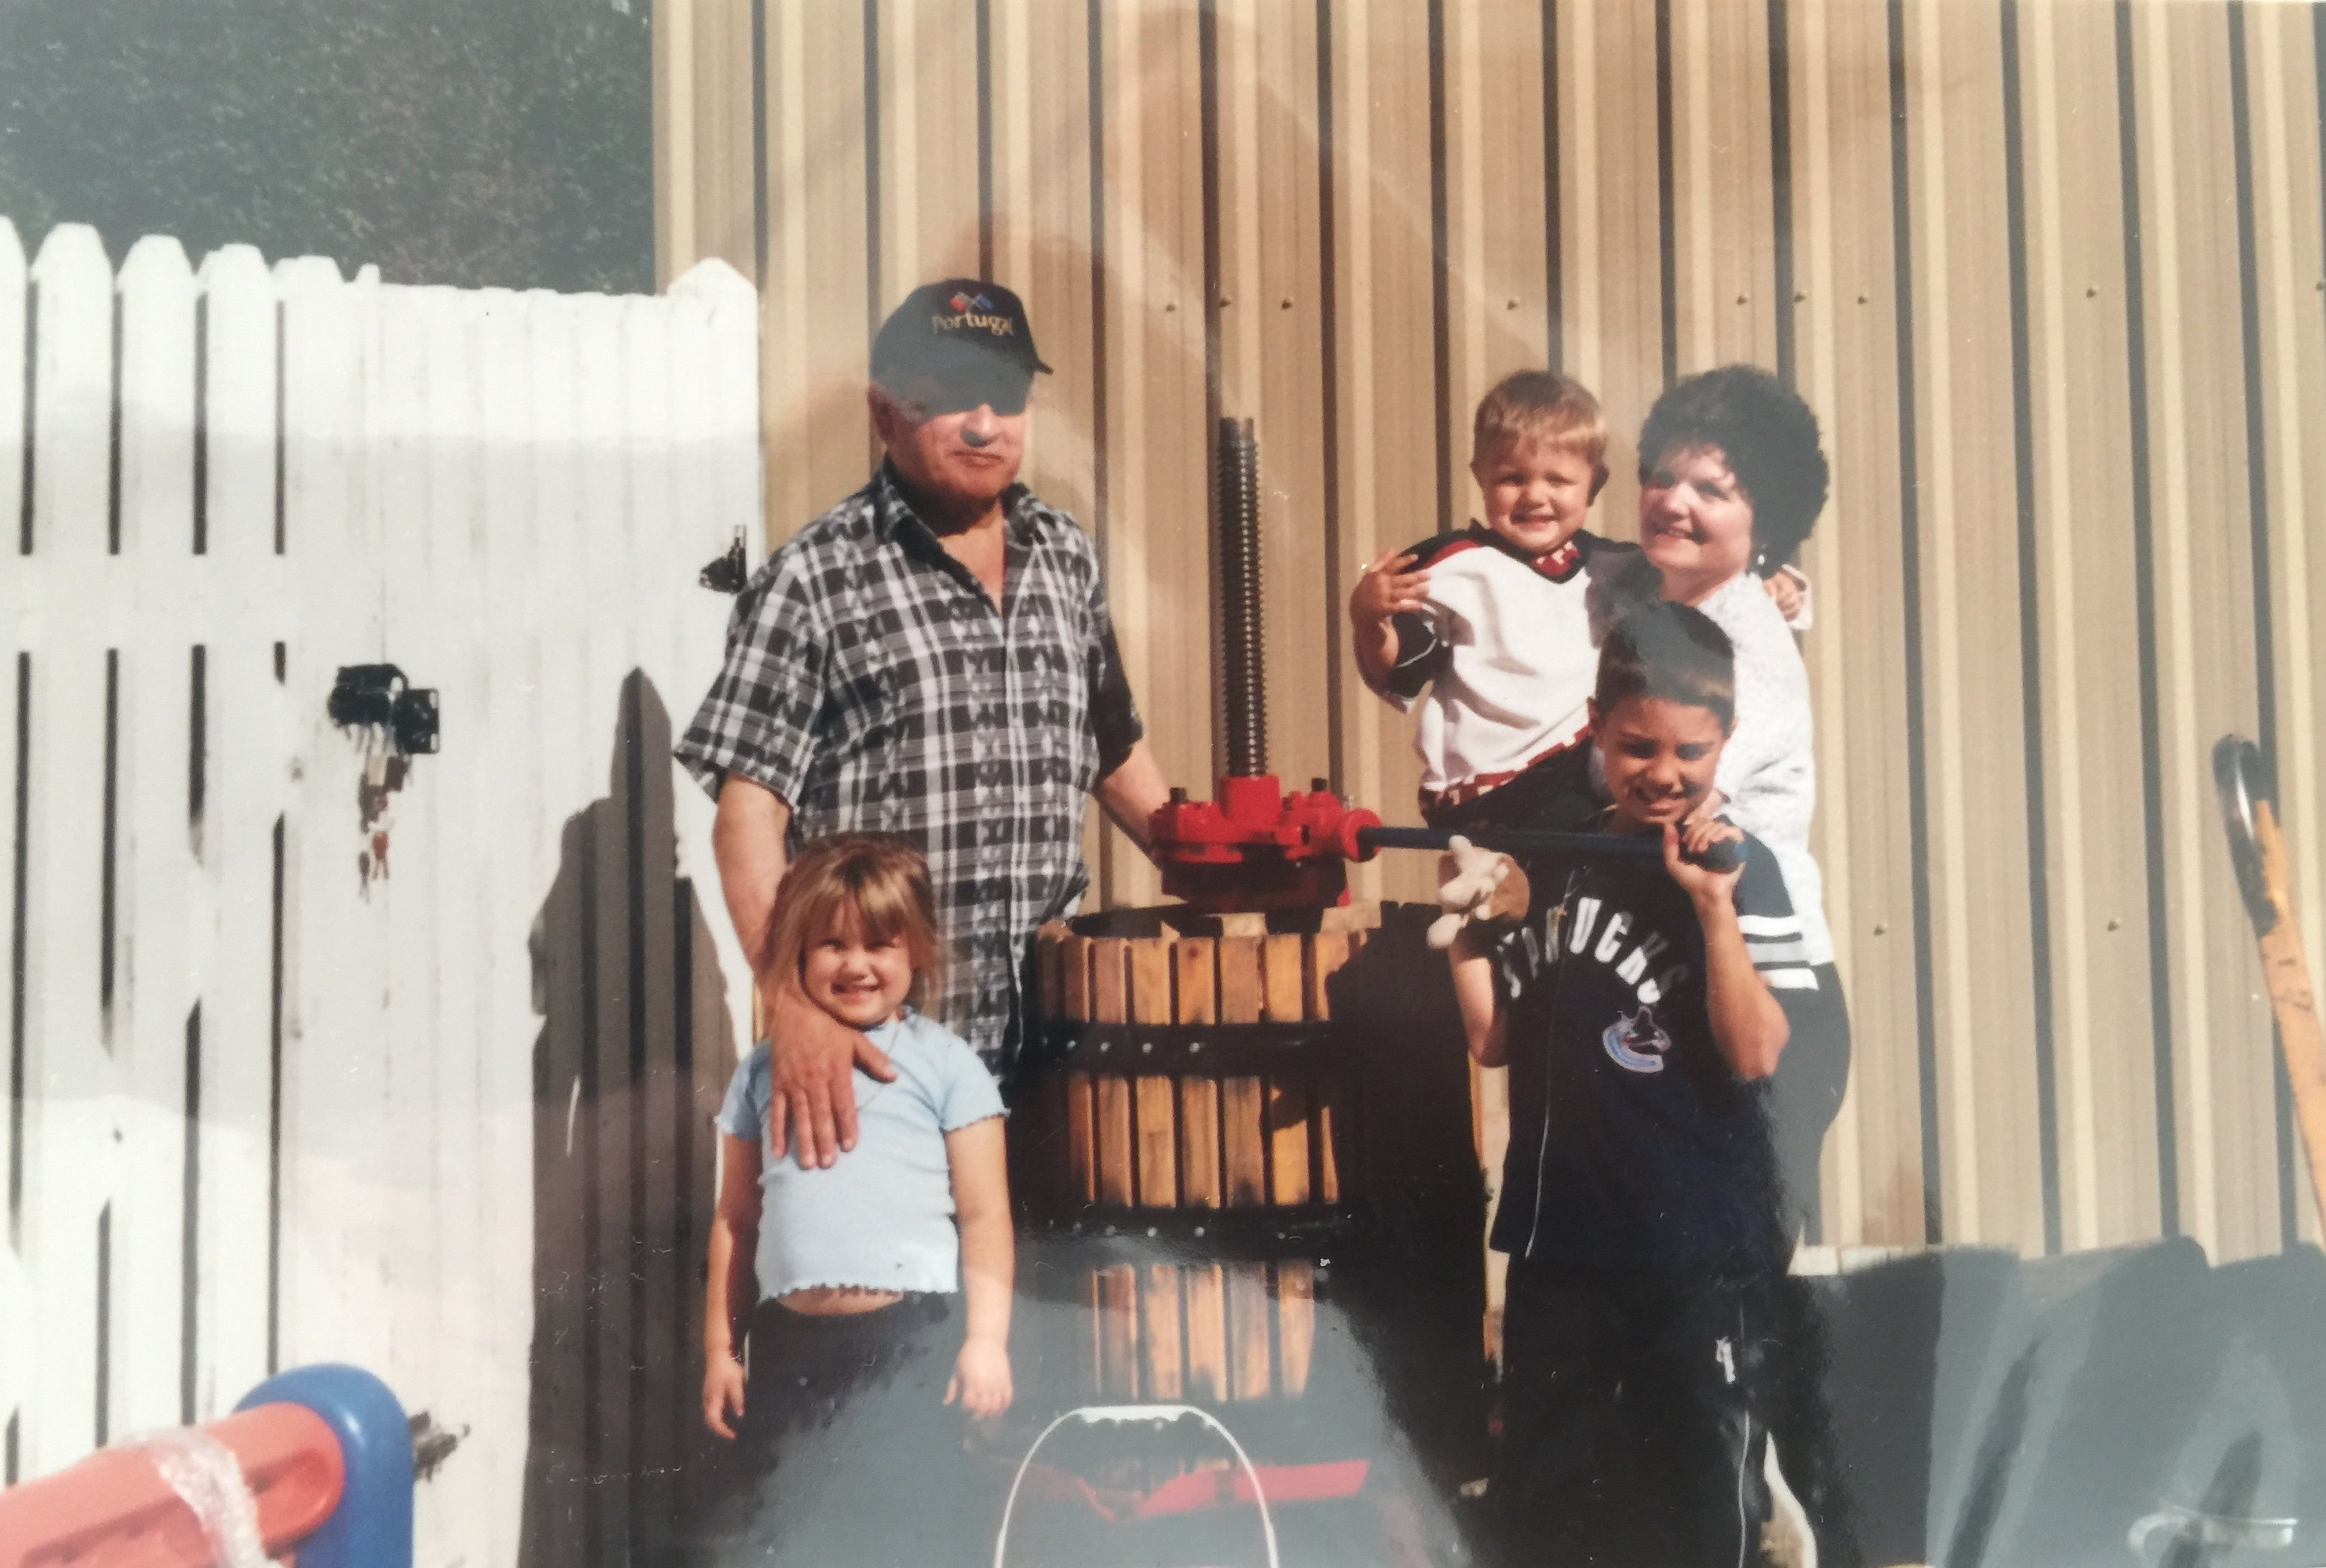 Manuel and Filomena with grandchildren grape pressing